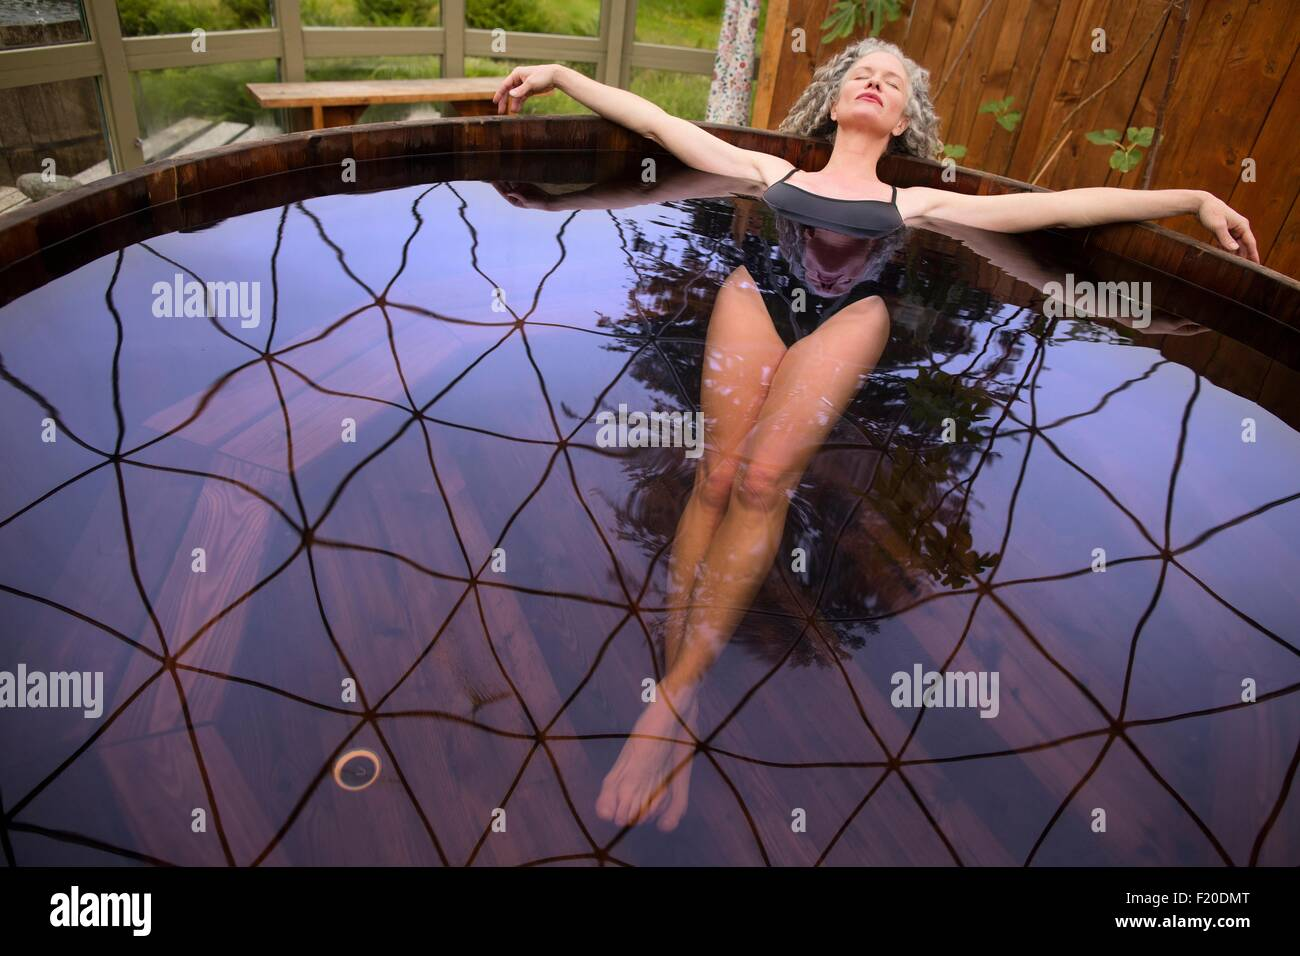 Mature woman lying back in hot tub at eco retreat - Stock Image